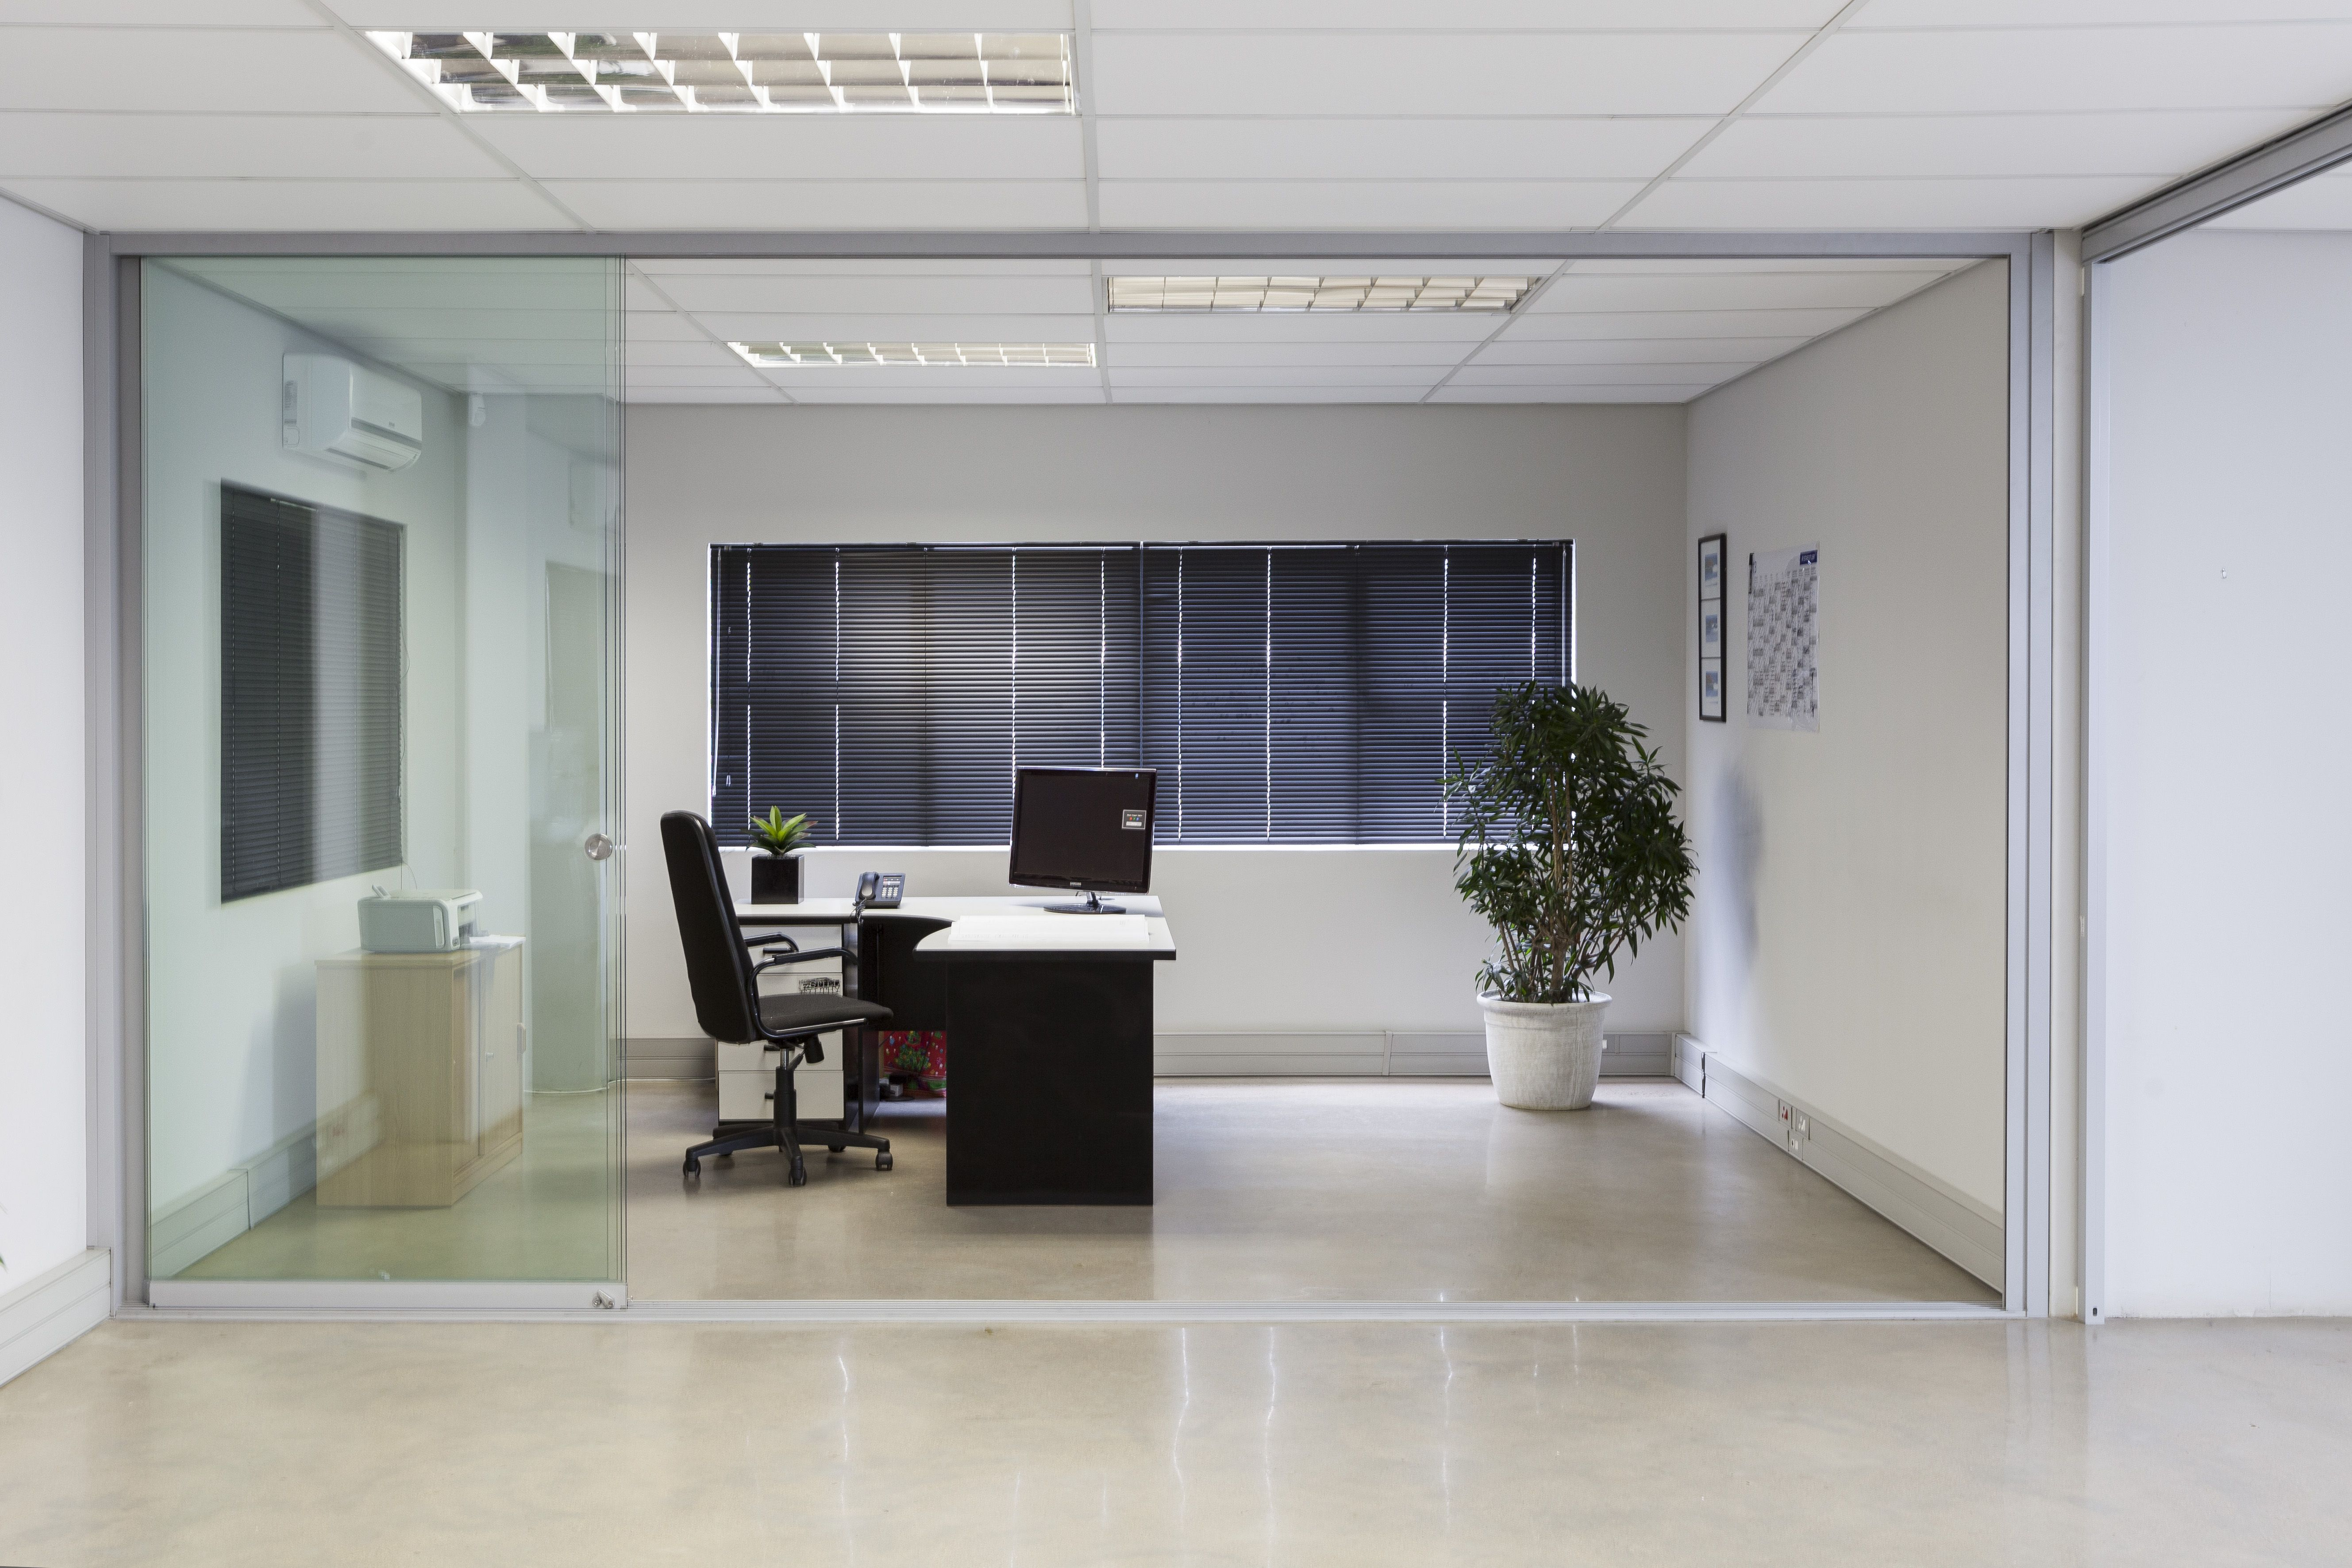 Sunflex S20 Frameless Glass Sliding Door Systems Offer Complete Flexibility  For Your Office Partitions.